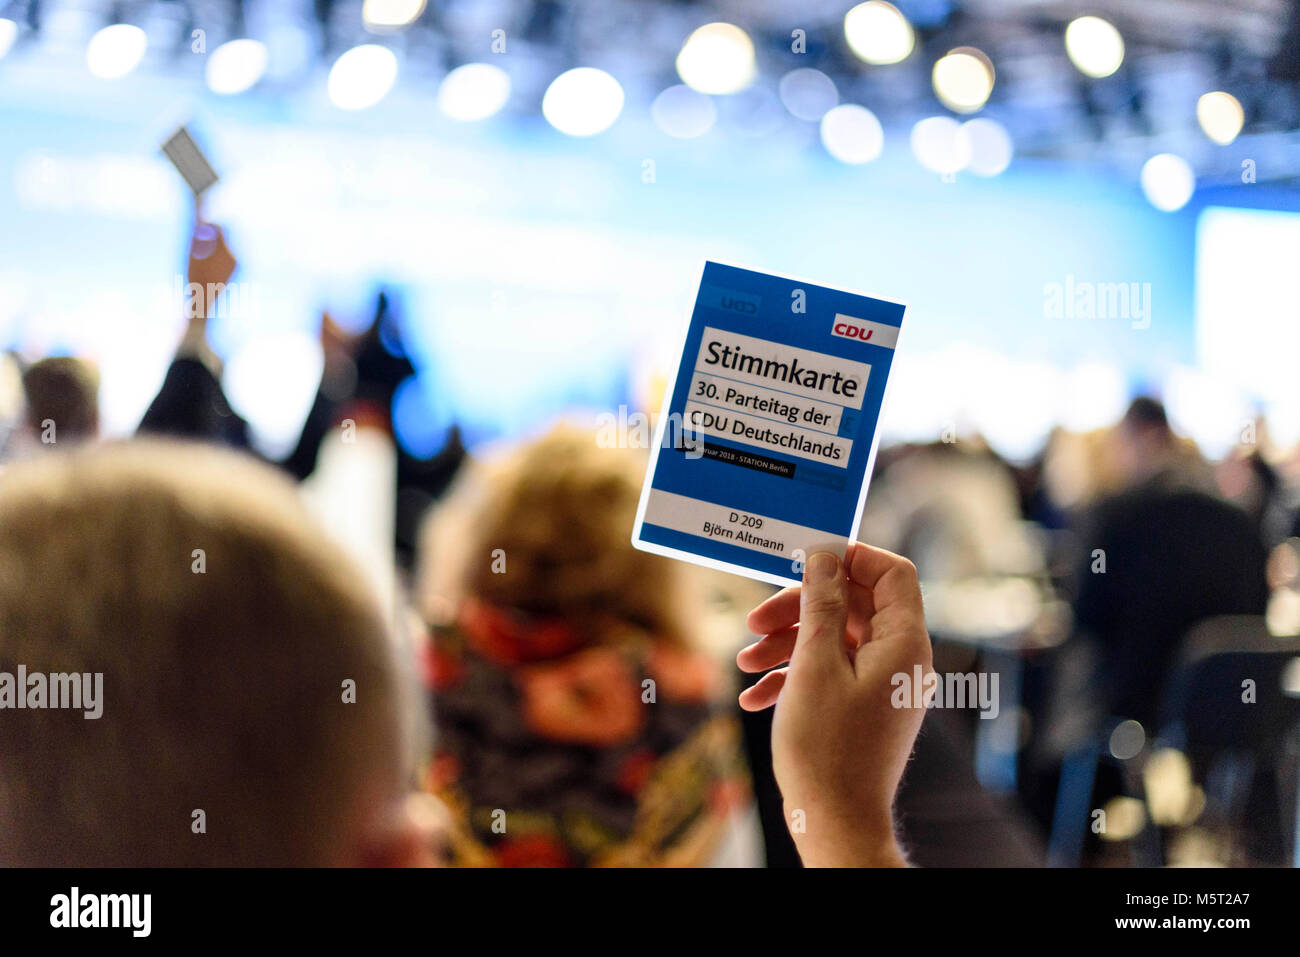 Berlin, Germany. 26th Feb, 2018. A party member votes during the 30th Congress of the CDU with a voting card. The - Stock Image